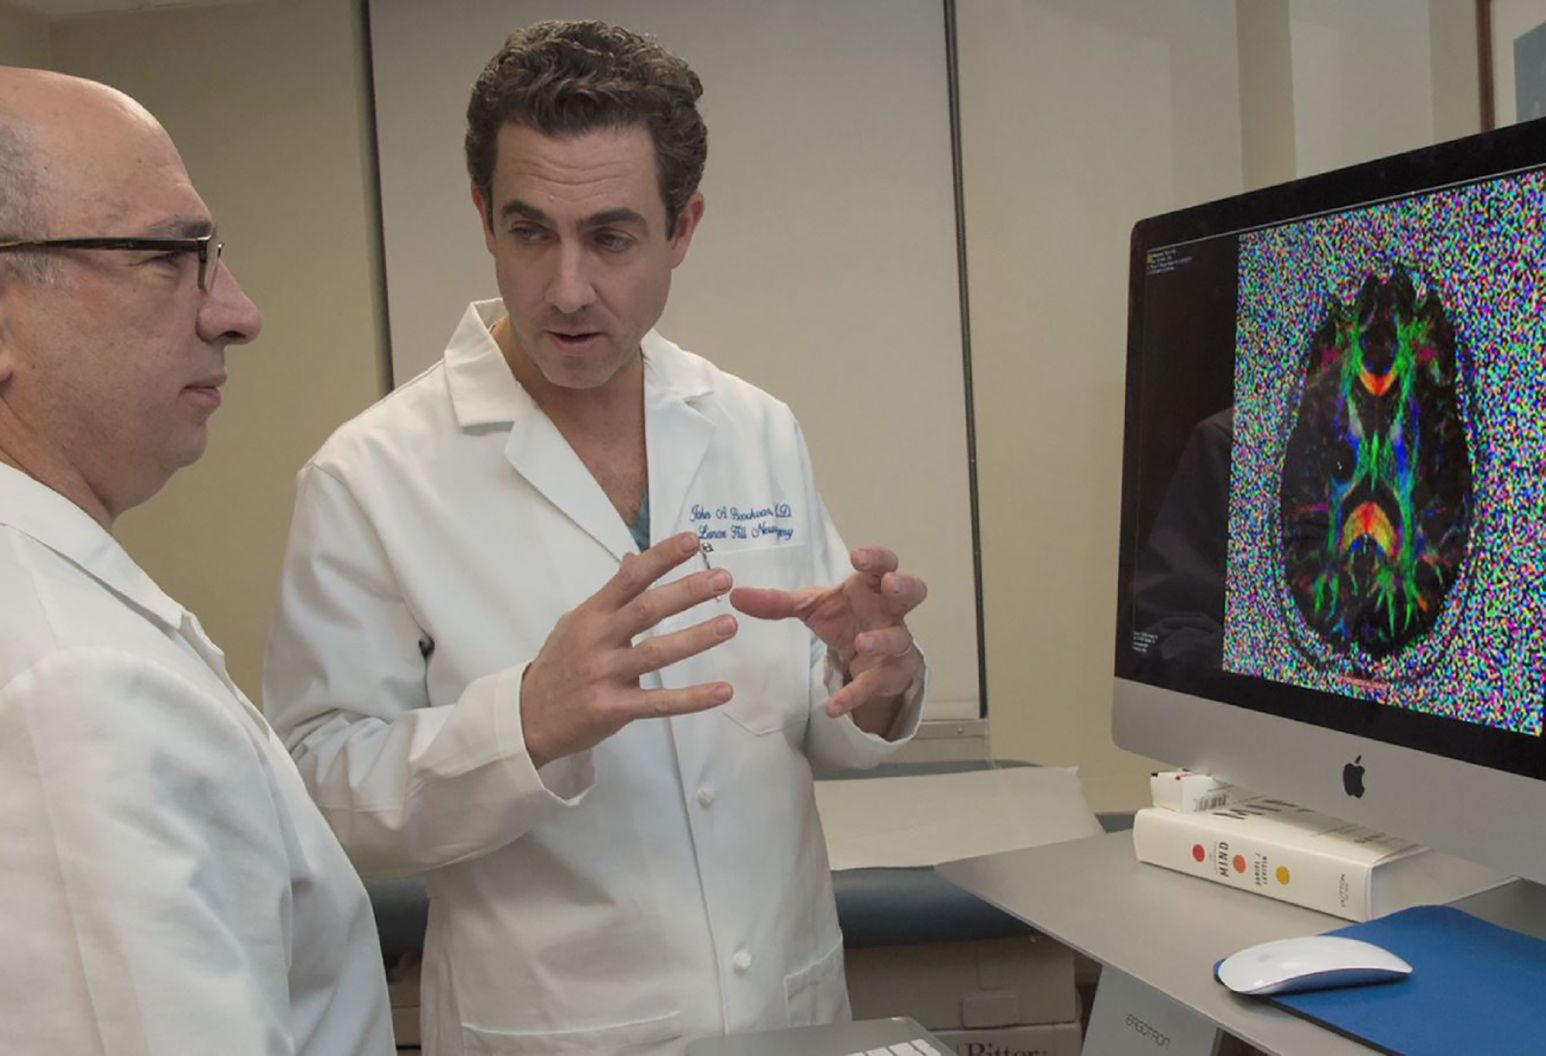 Two doctors in lab coats discuss a brain scan that is showing on a computer monitor.